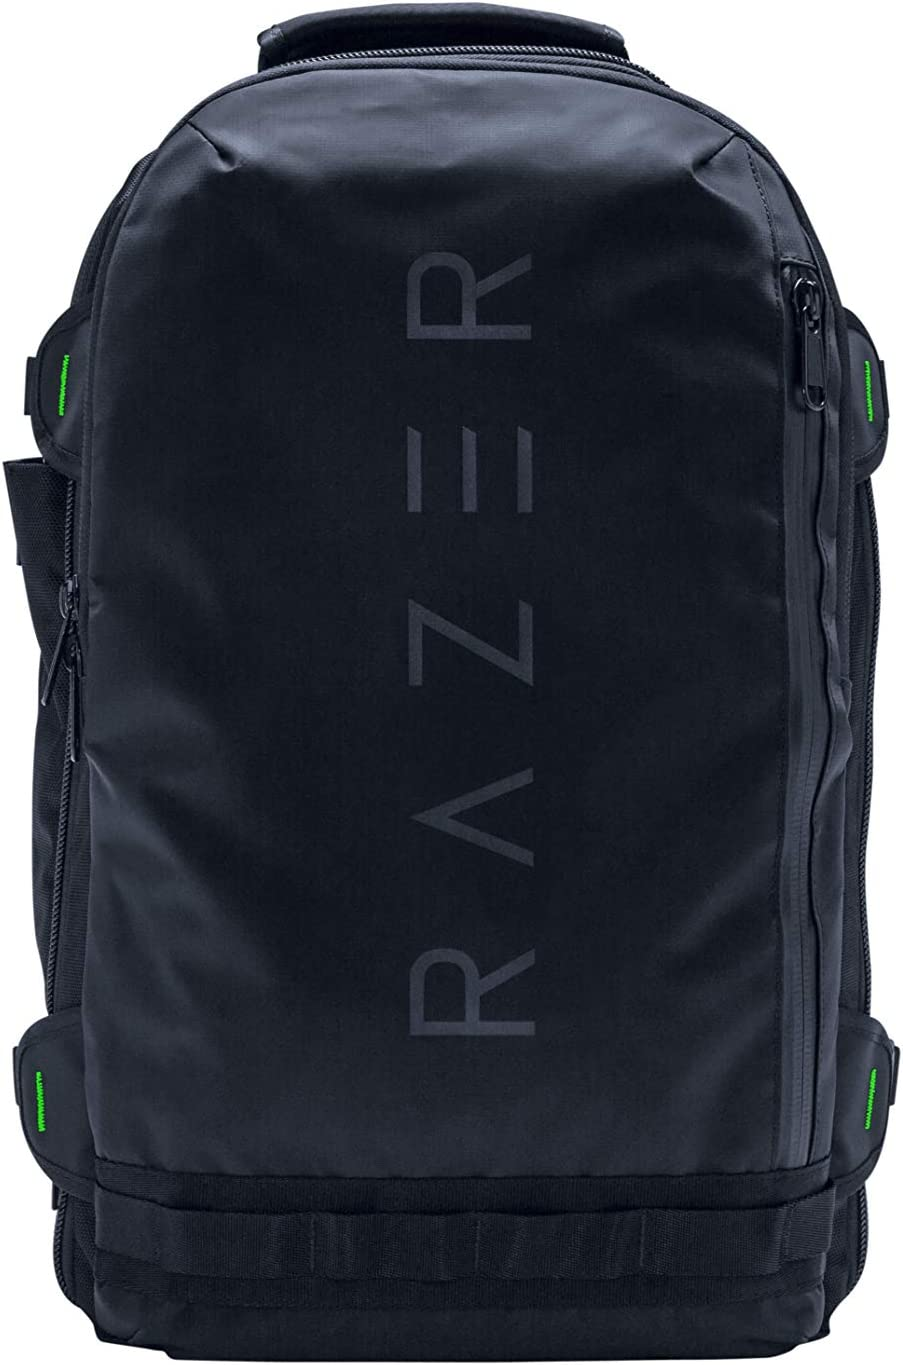 """Razer Rogue v2 17.3"""" Gaming Laptop Backpack: Tear & Water Resistant Exterior - Mesh Side Pocket for Water Bottles - Dedicated Laptop Compartment - Made to Fit 17 inch Laptops"""